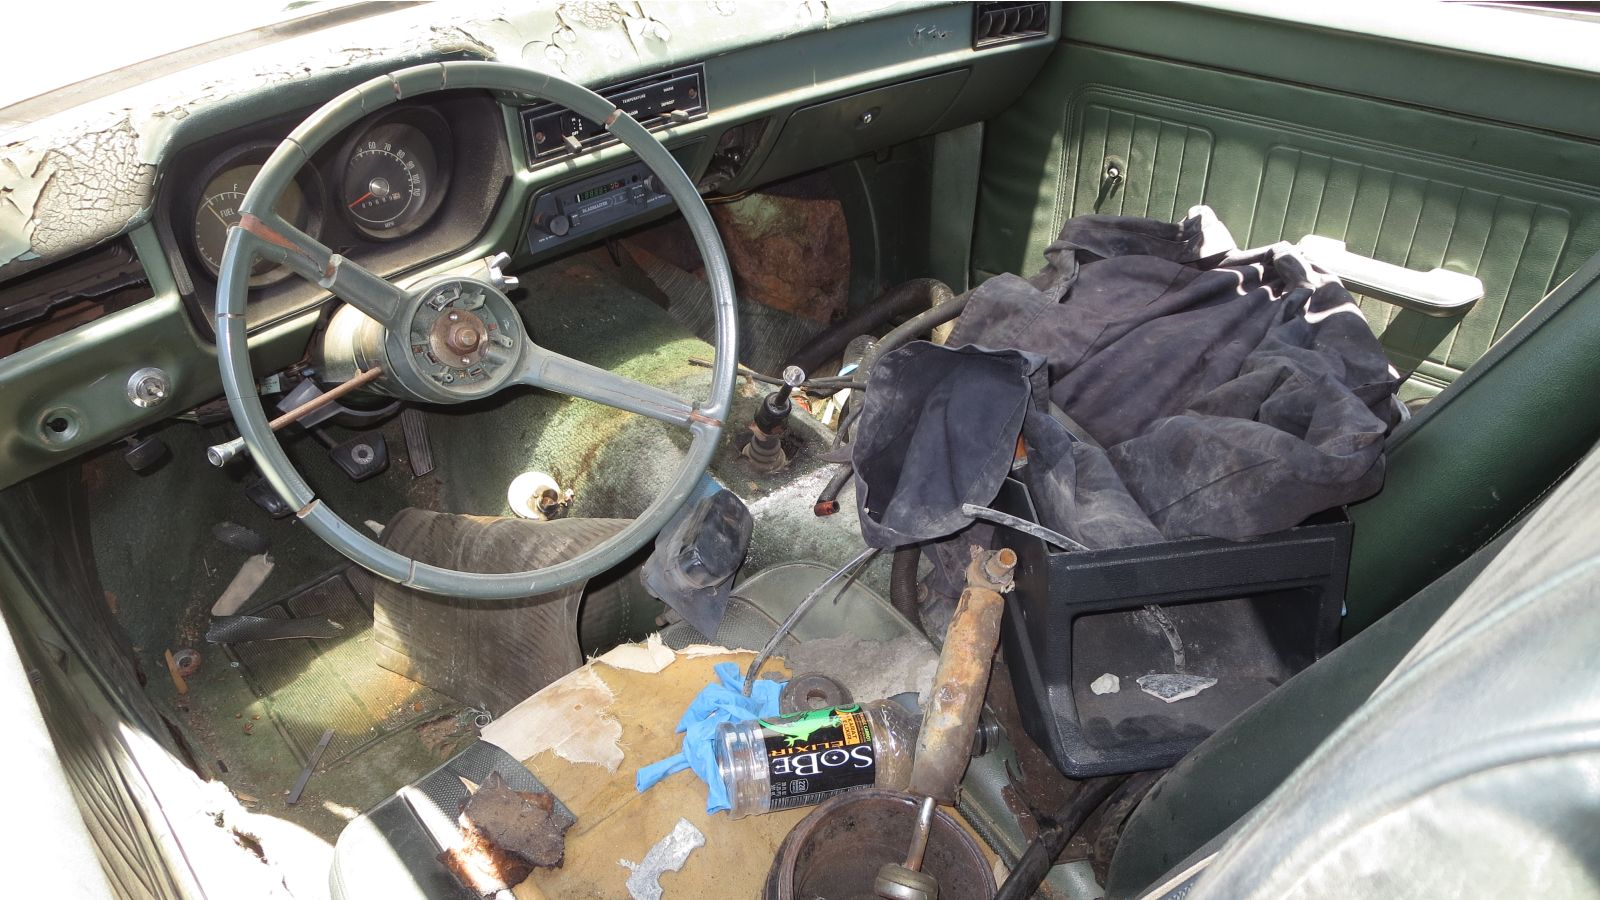 Junkyard Gem 1971 Ford Pinto Coupe Autoblog Bronco Interior It Once Had A Vinyl Top Making Bit More Snazzy Than Your Entry Level In